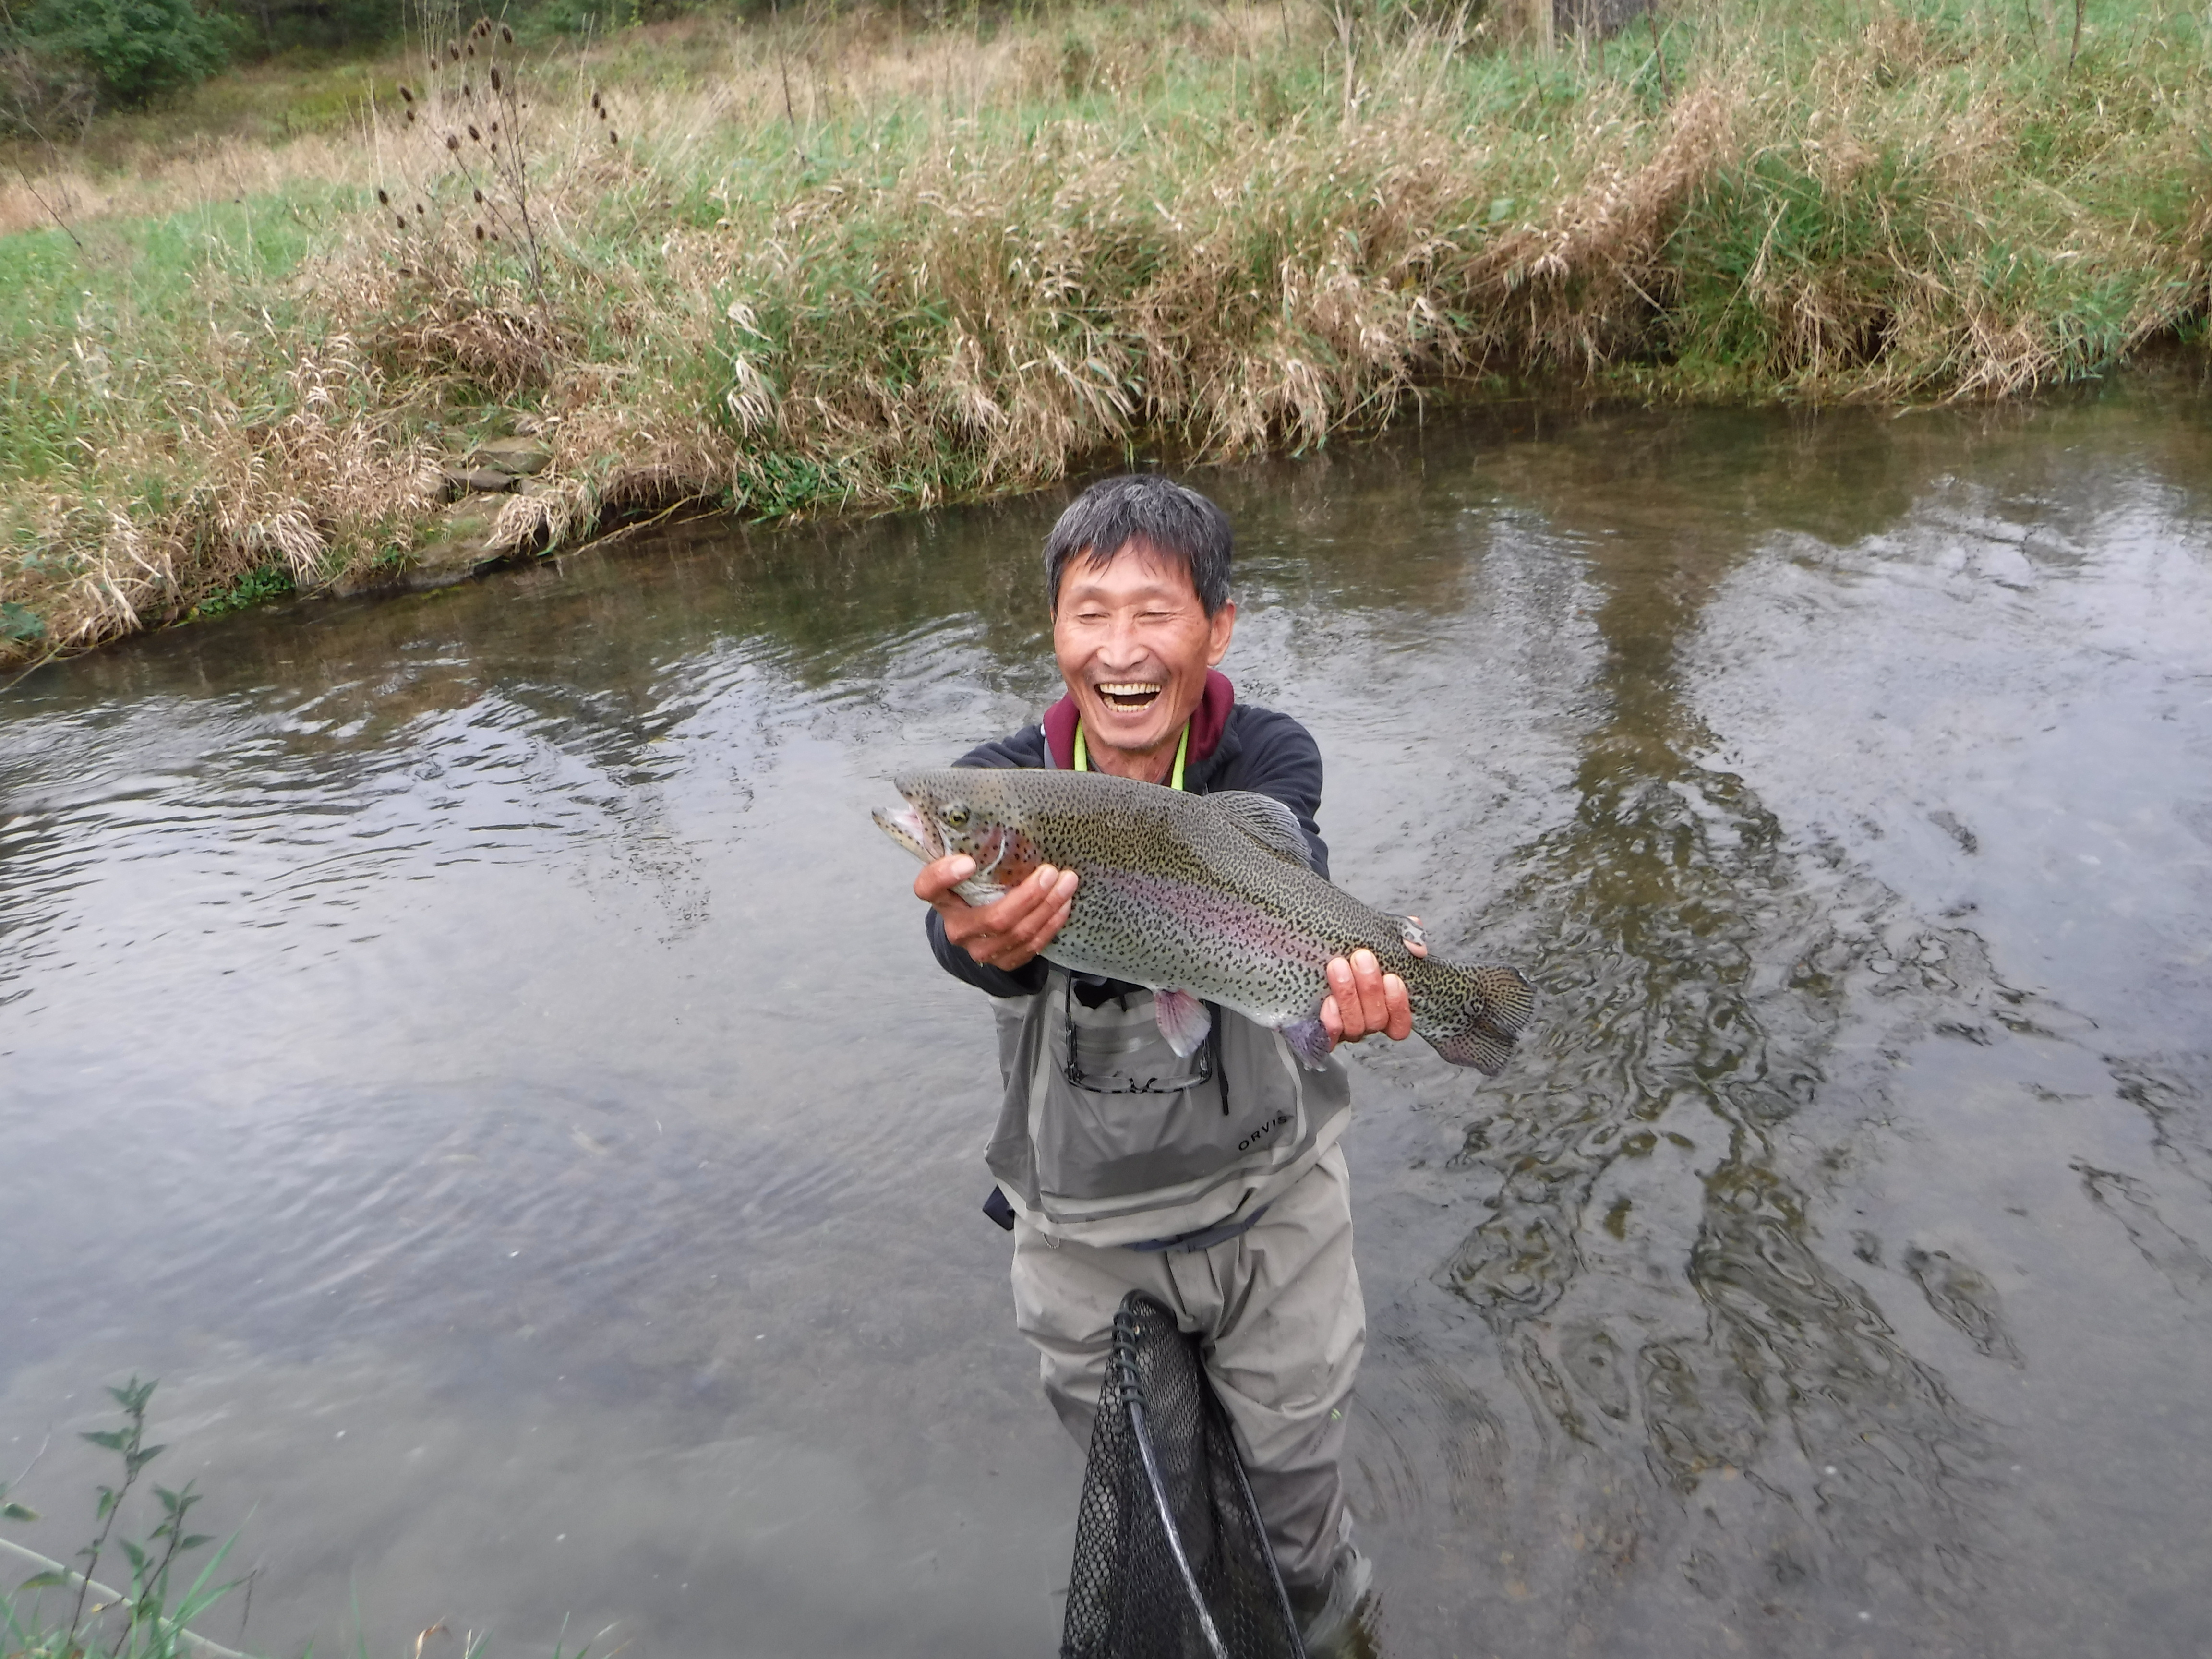 Late season caddis pa fly fishing on spruce creek trout for Fly fishing pa